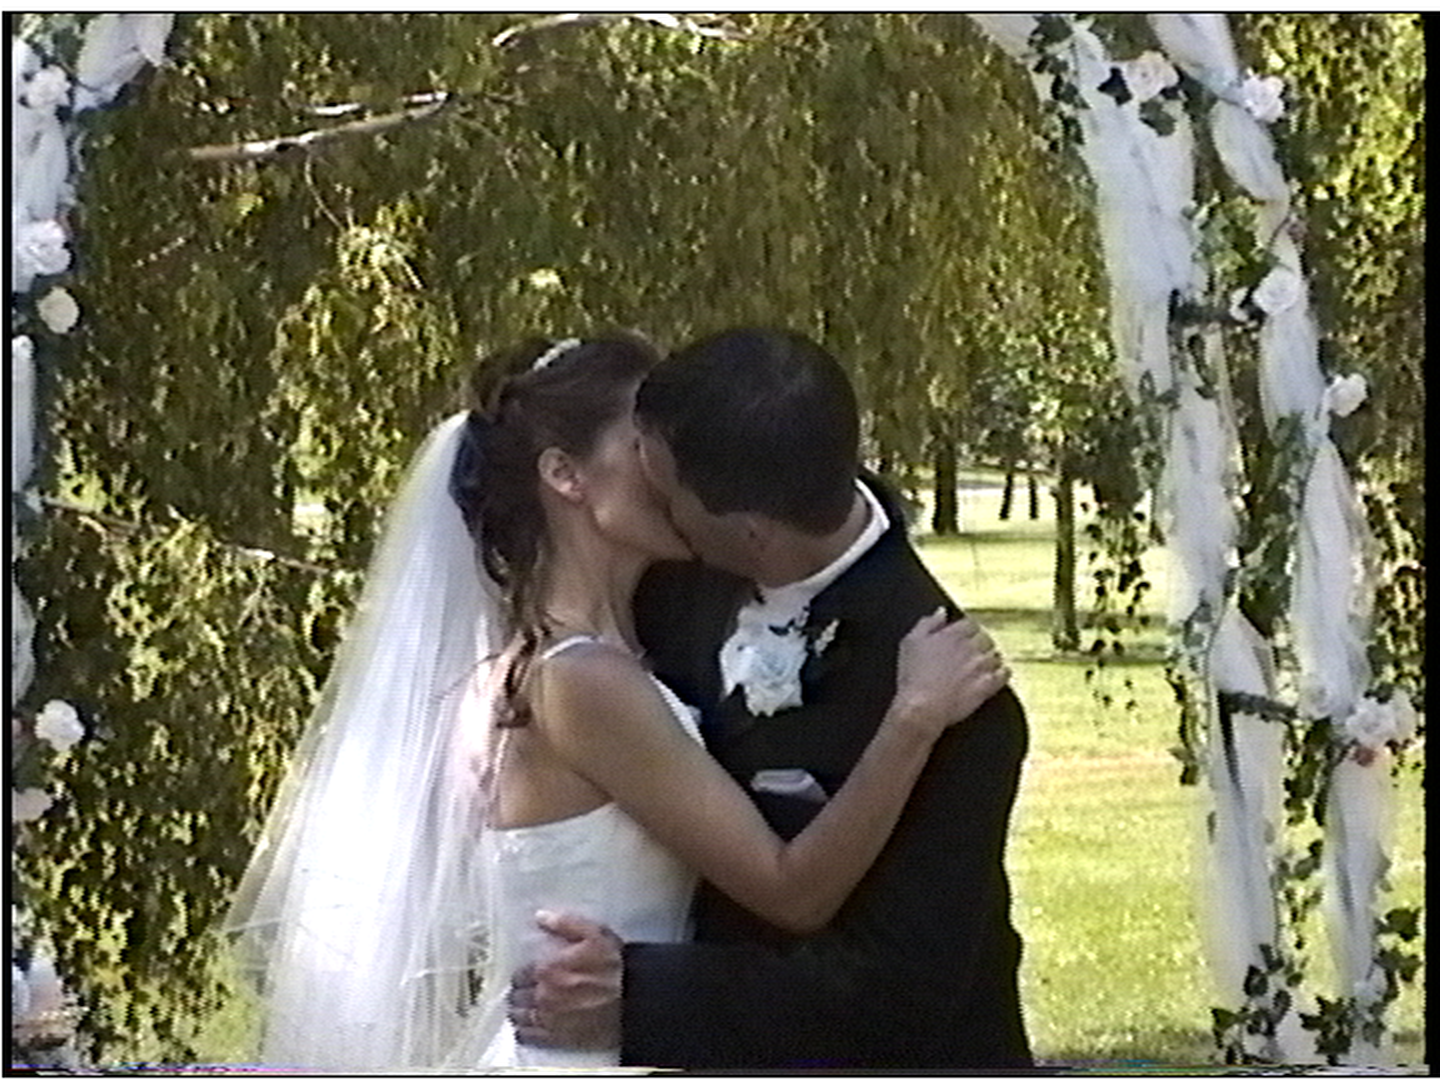 Click image for larger version  Name:Wedding P - 13-30 - DMR-ES25 L.png Views:2528 Size:2.19 MB ID:35578